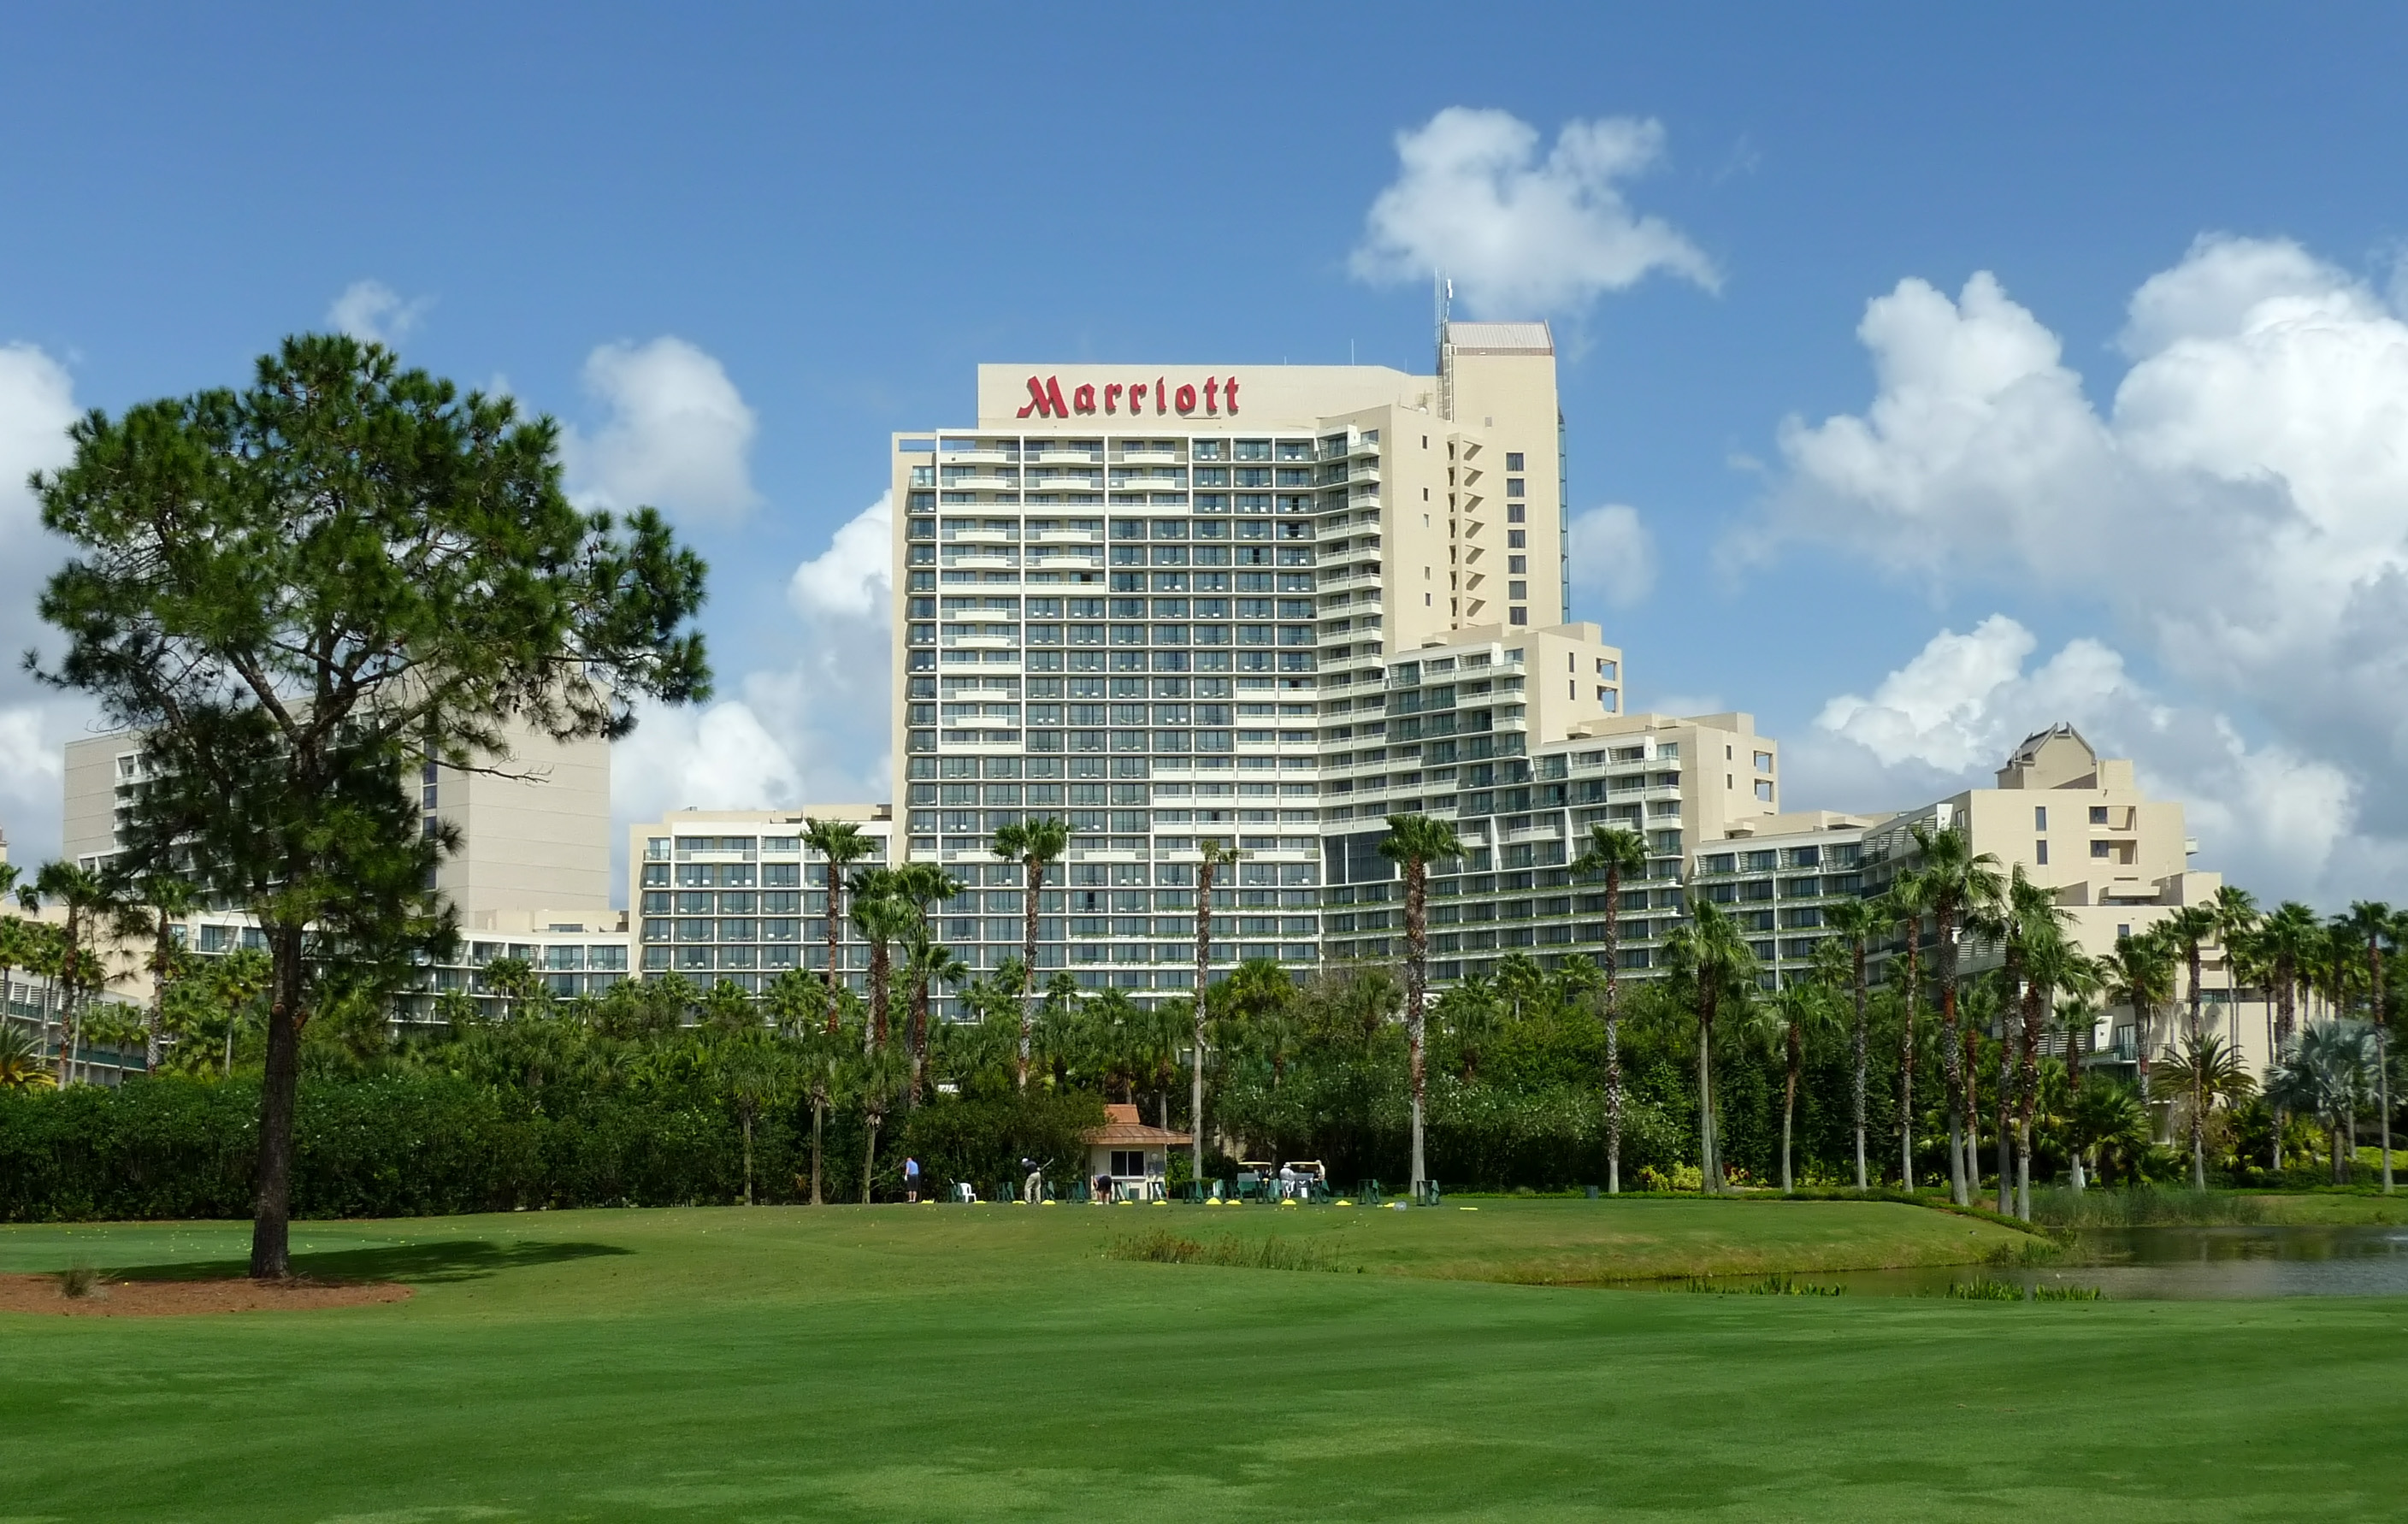 Photo 18 Marriott Orlando World Center